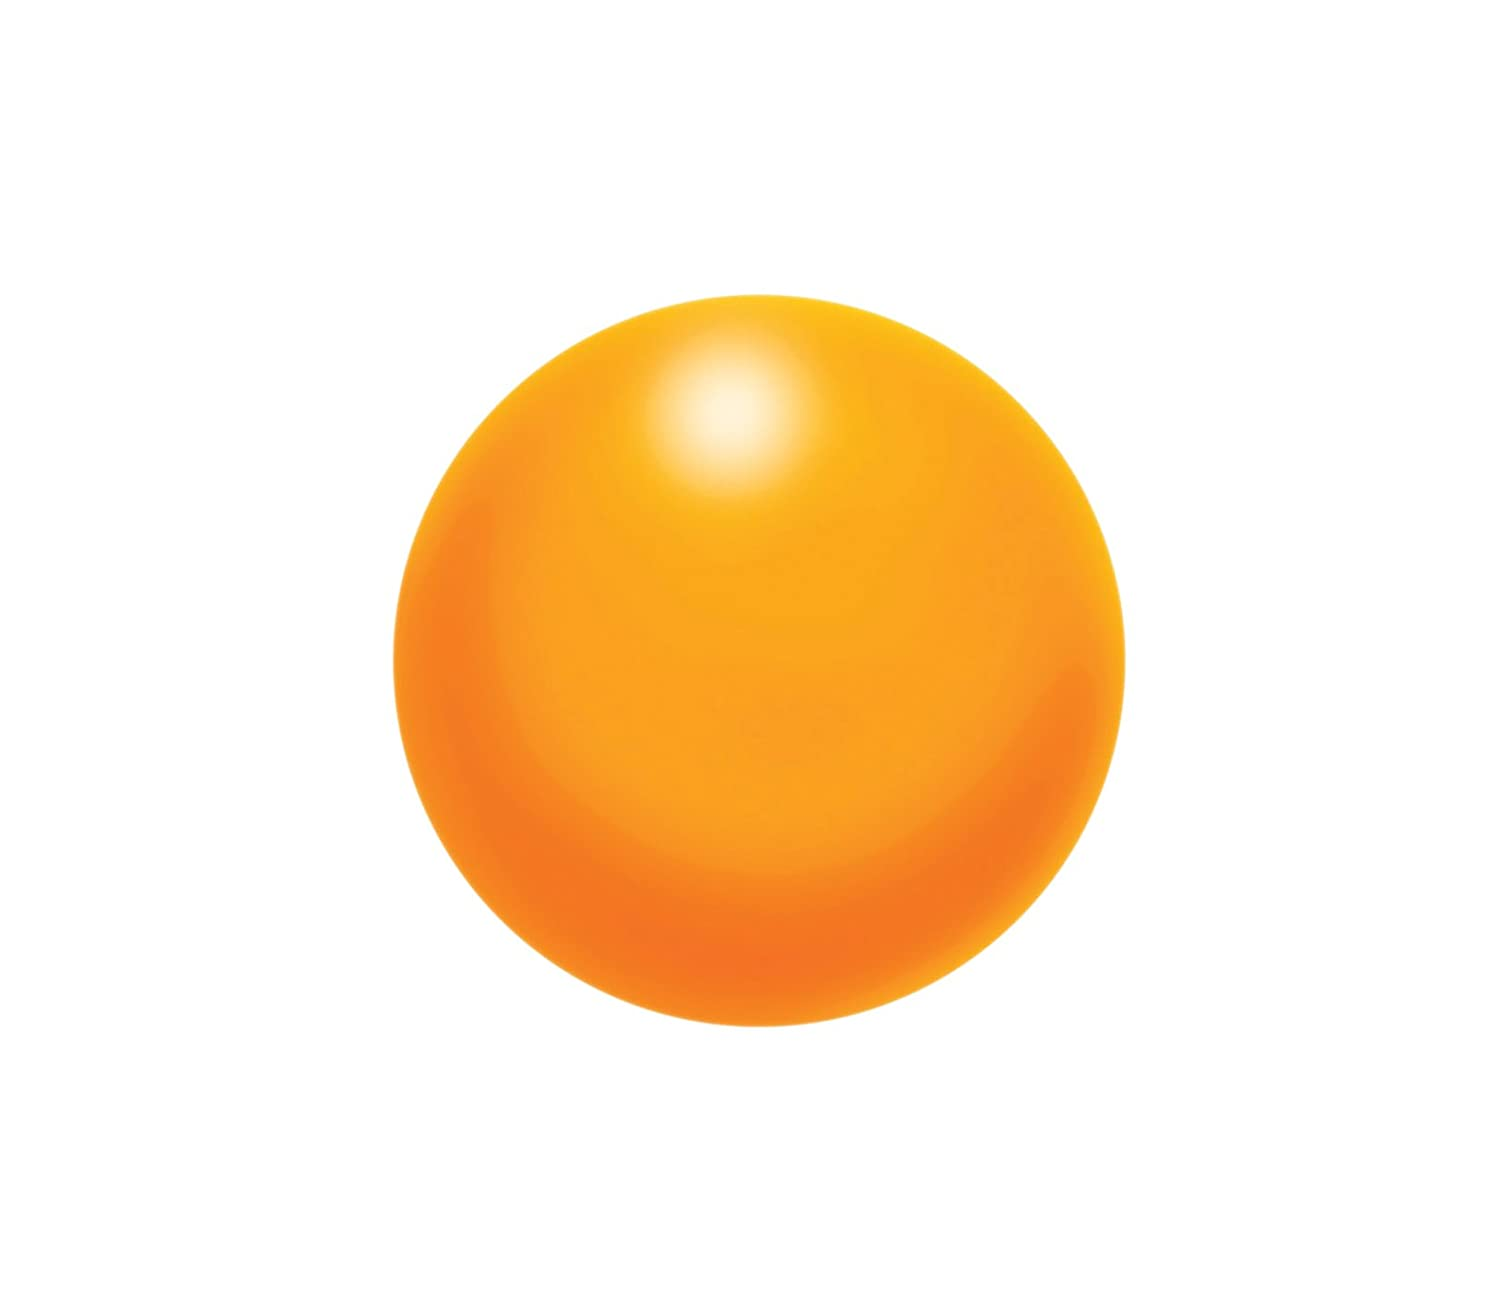 Ideal for Rehabiliation//Arthritis//Weak Wrists. AIDAPT Orange Soft Foam Physiotherapy Ball for Strengthening Hand and Wrist Muscles